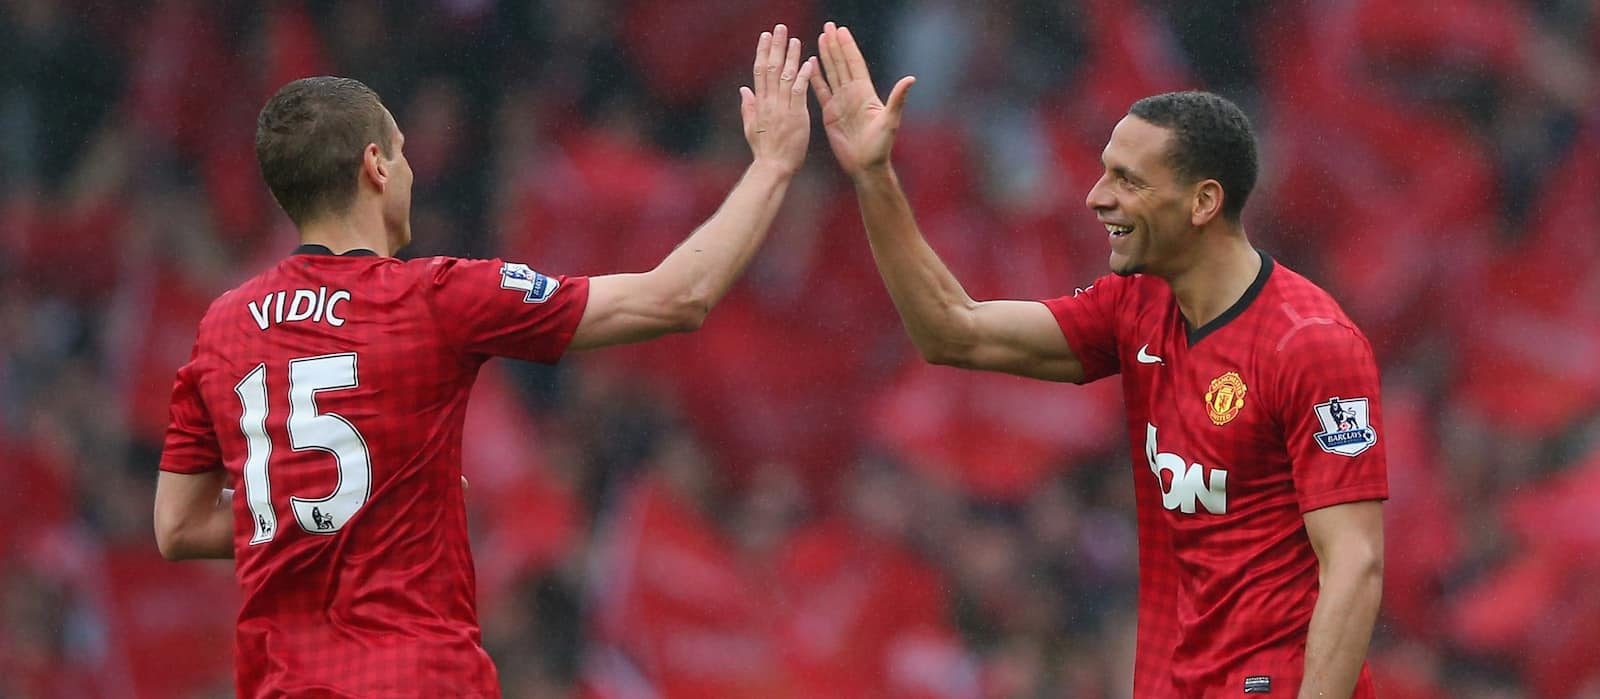 Nemanja Vidic: Playing for Manchester United is a privilege